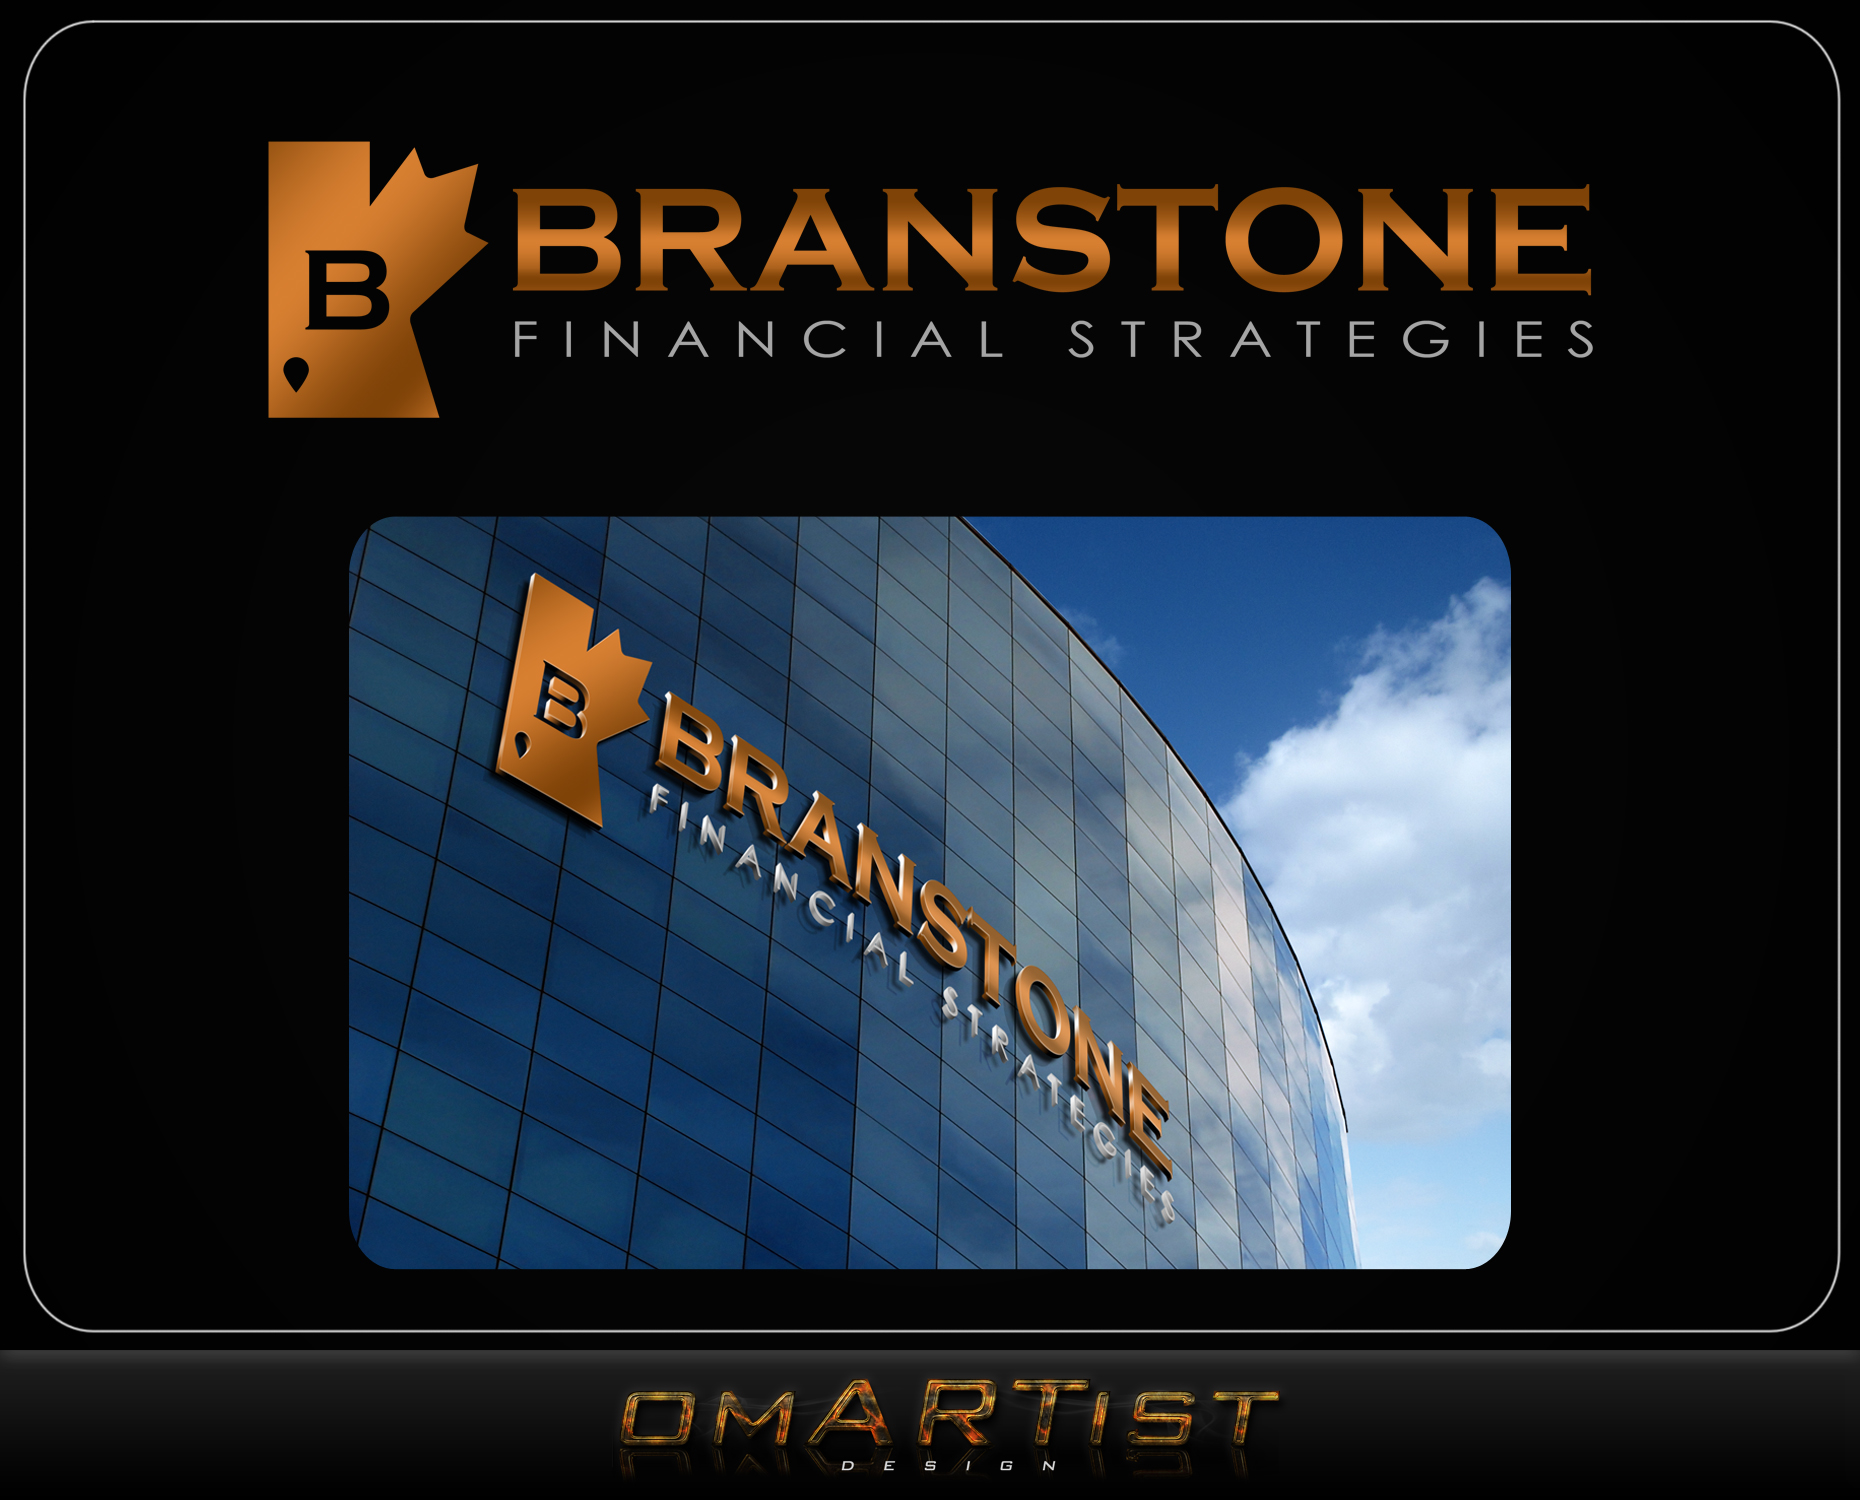 Logo Design by omARTist - Entry No. 203 in the Logo Design Contest Inspiring Logo Design for Branstone Financial Strategies.